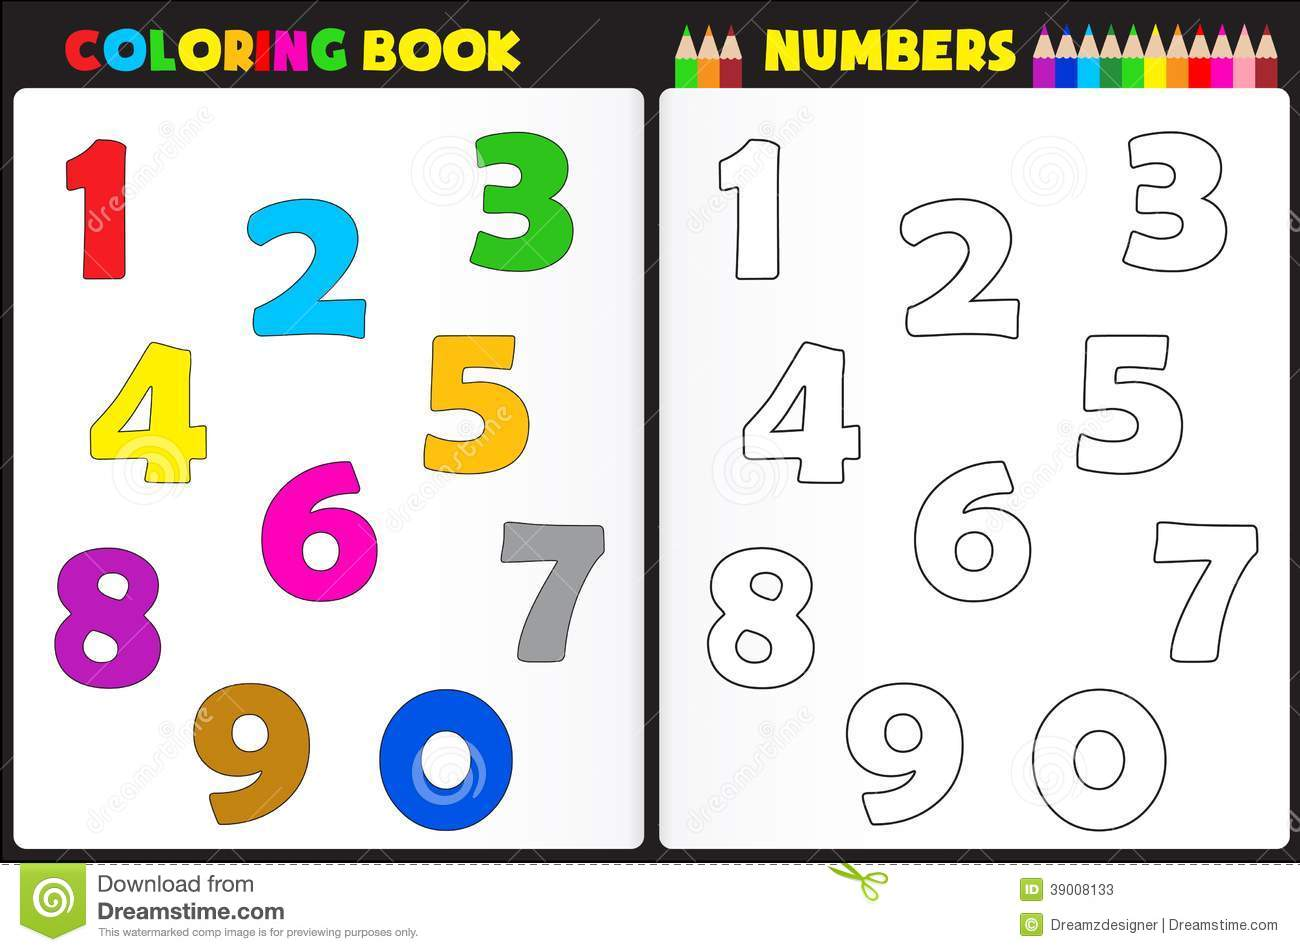 Coloring book numbers